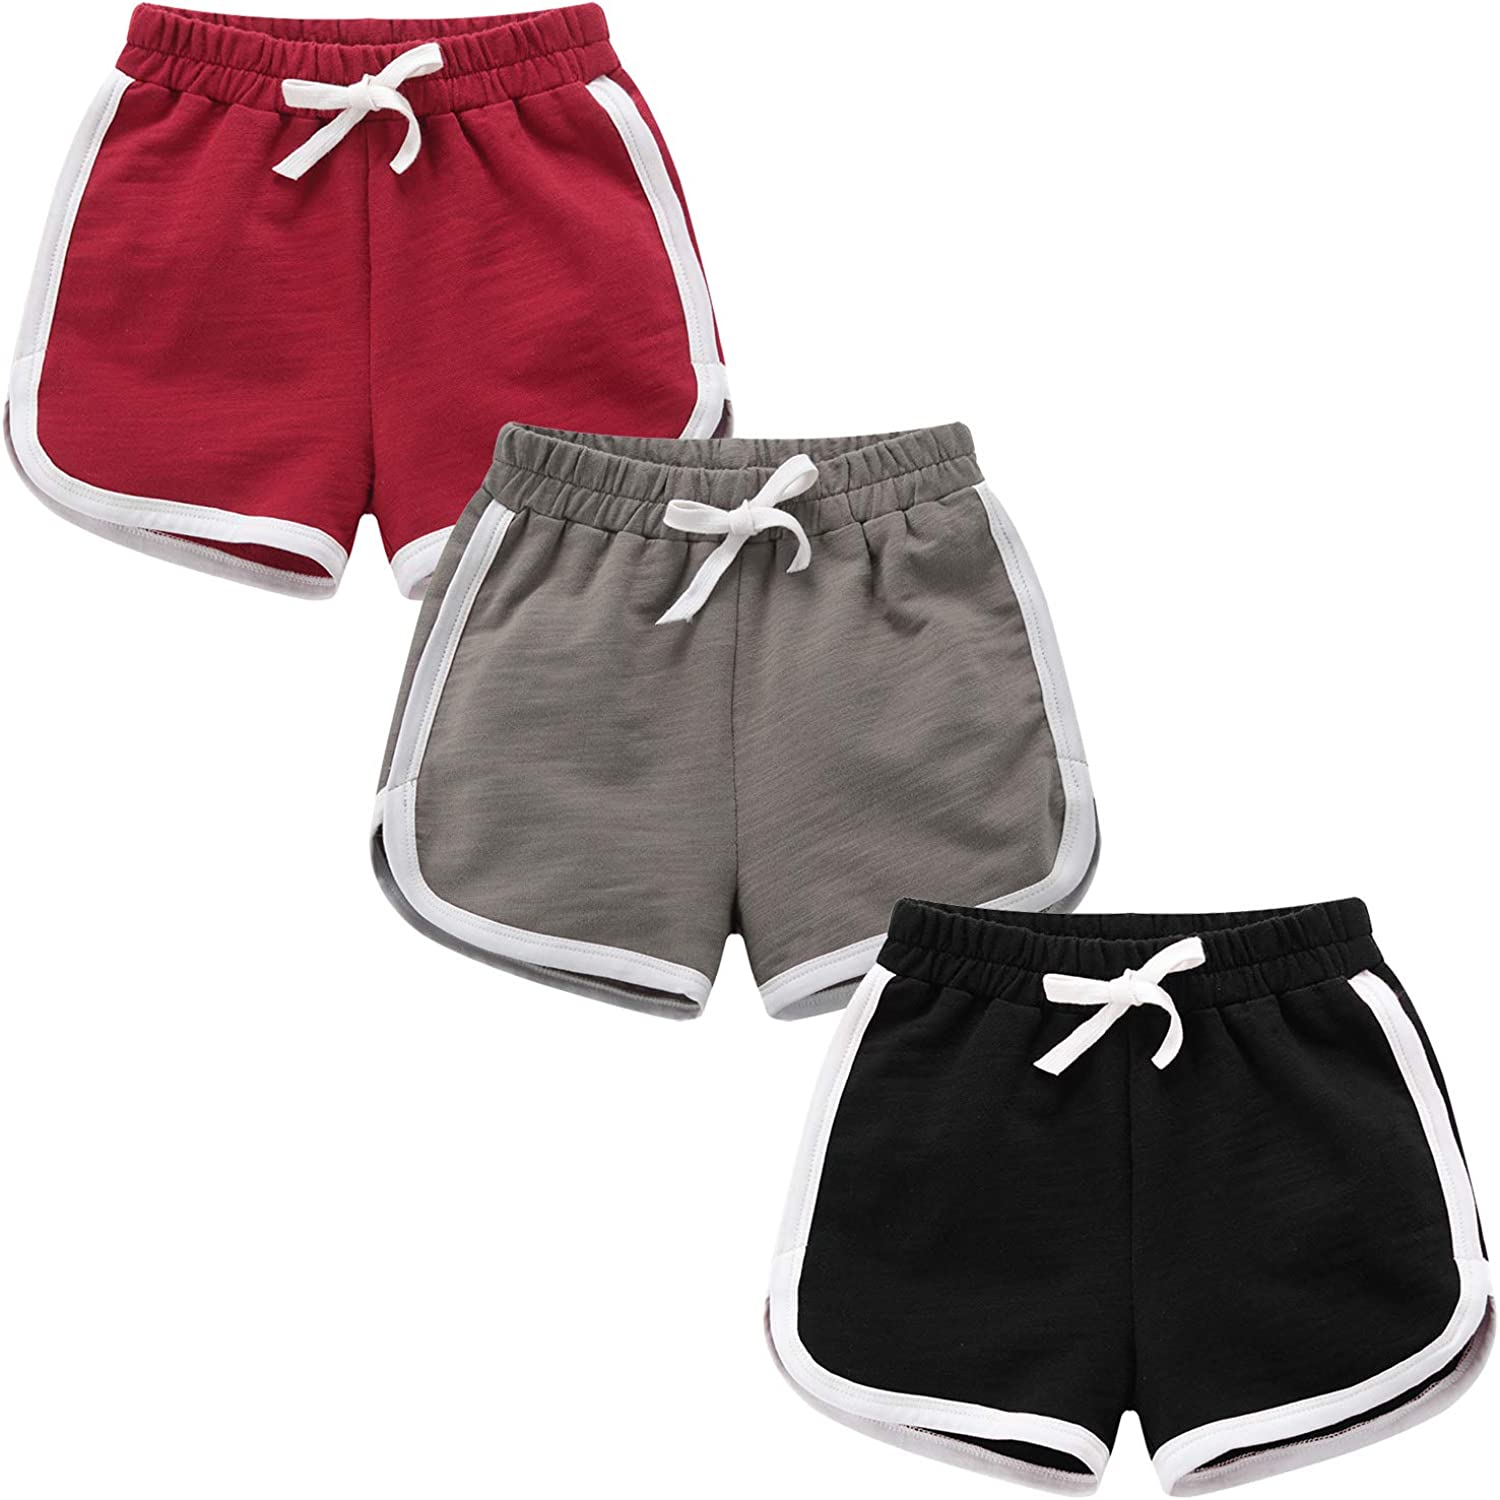 Girls Boys 3 Pack Running Athletic Cotton Shorts, Kids Baby Workout and Fashion Dolphin Summer Beach Sports: Clothing